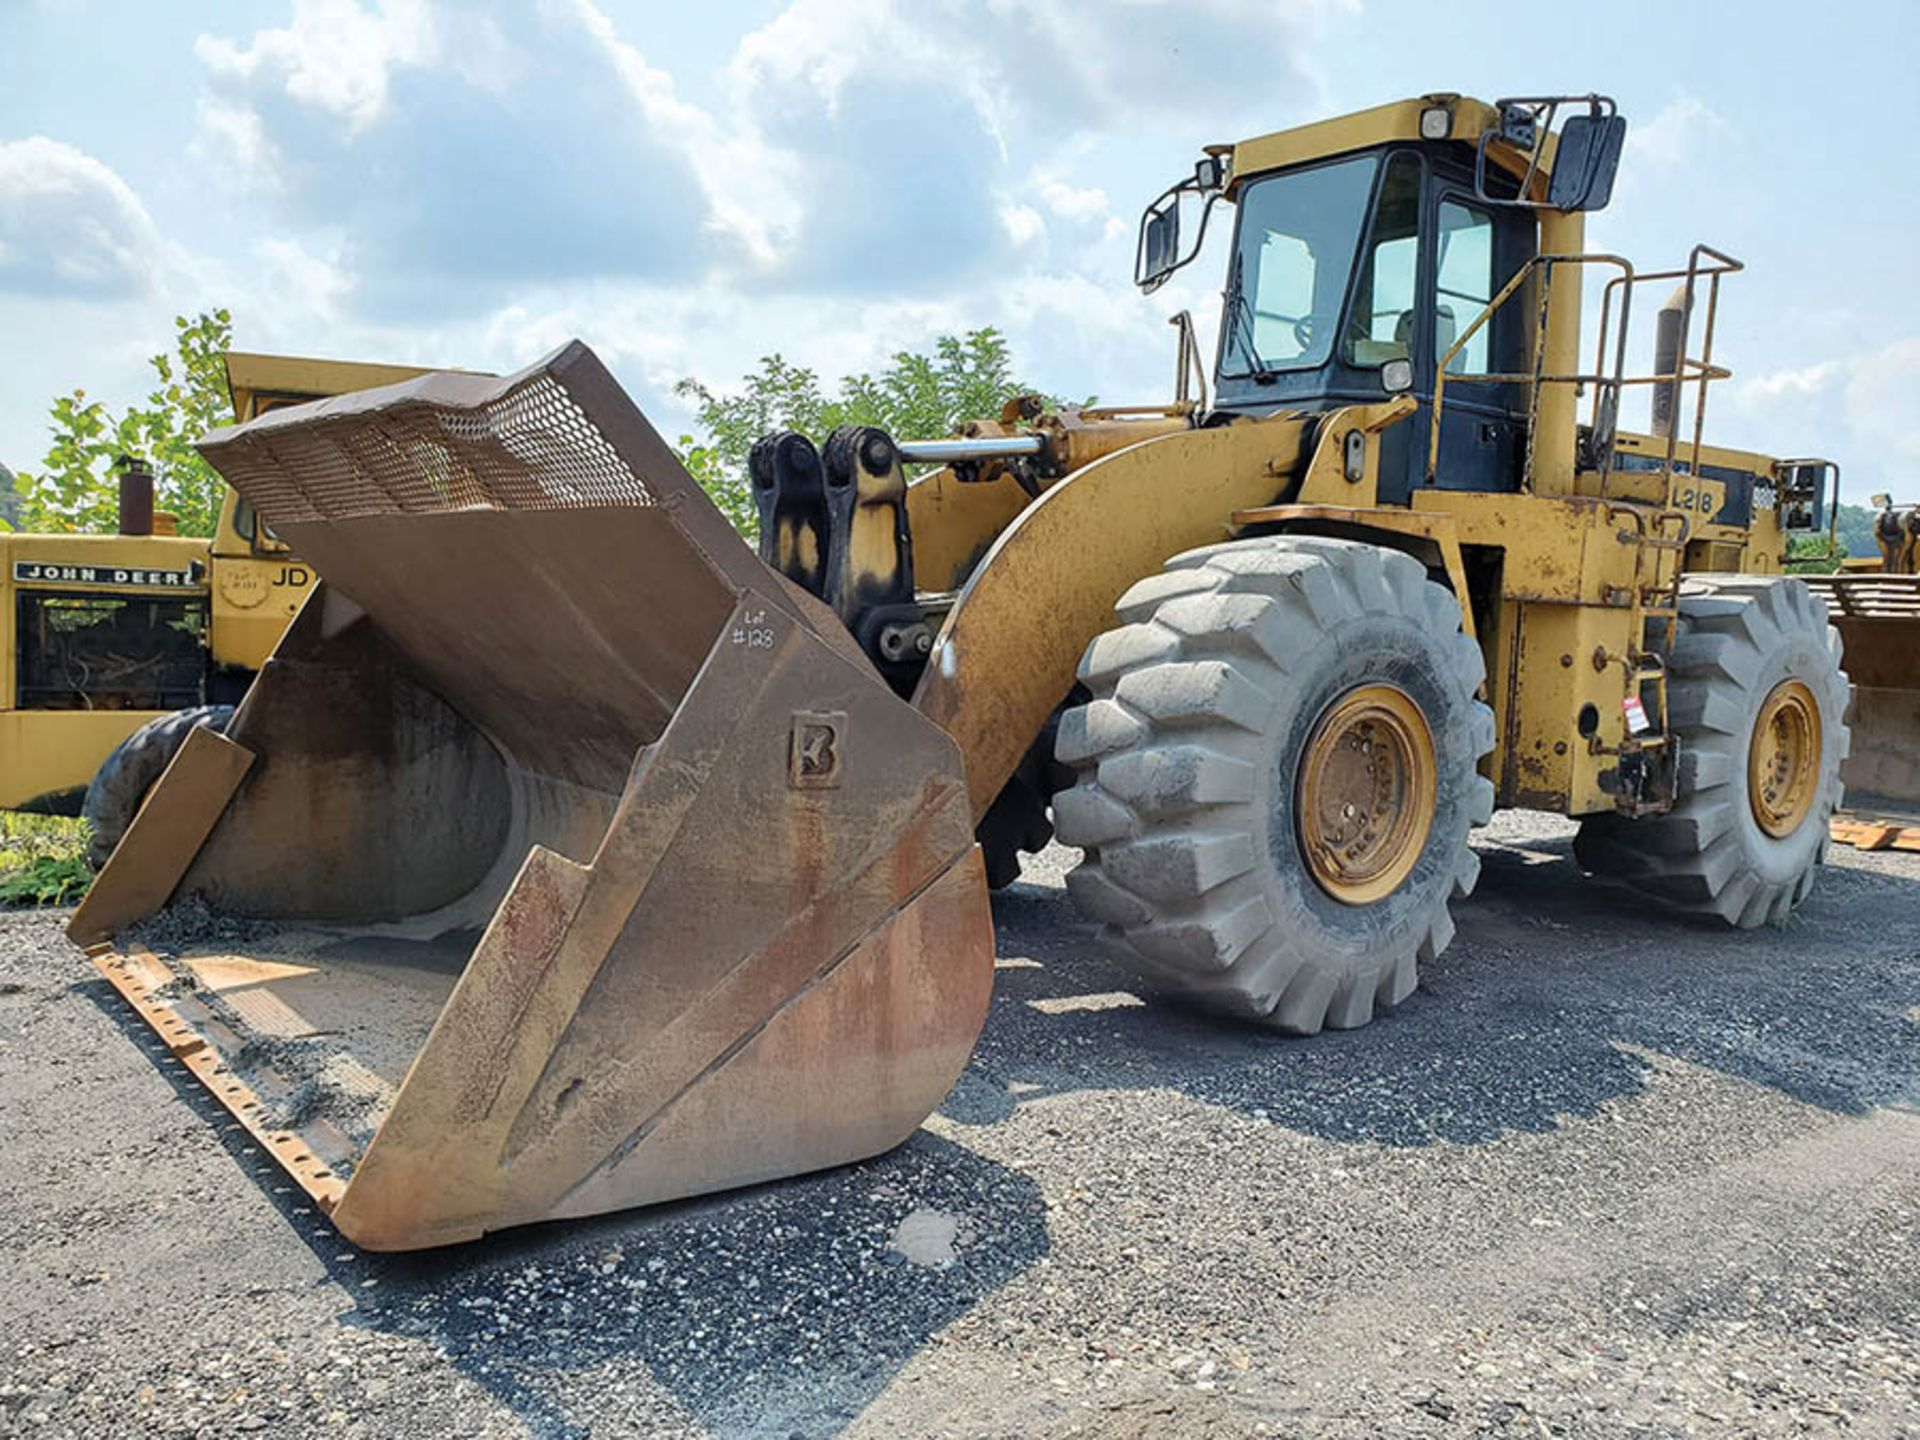 Lot 128 - CATERPILLAR 980F WHEEL LOADER, PIN: 8JN00819, 70,092 HOURS SHOWING, 6-CYLINDER TURBO DIESEL